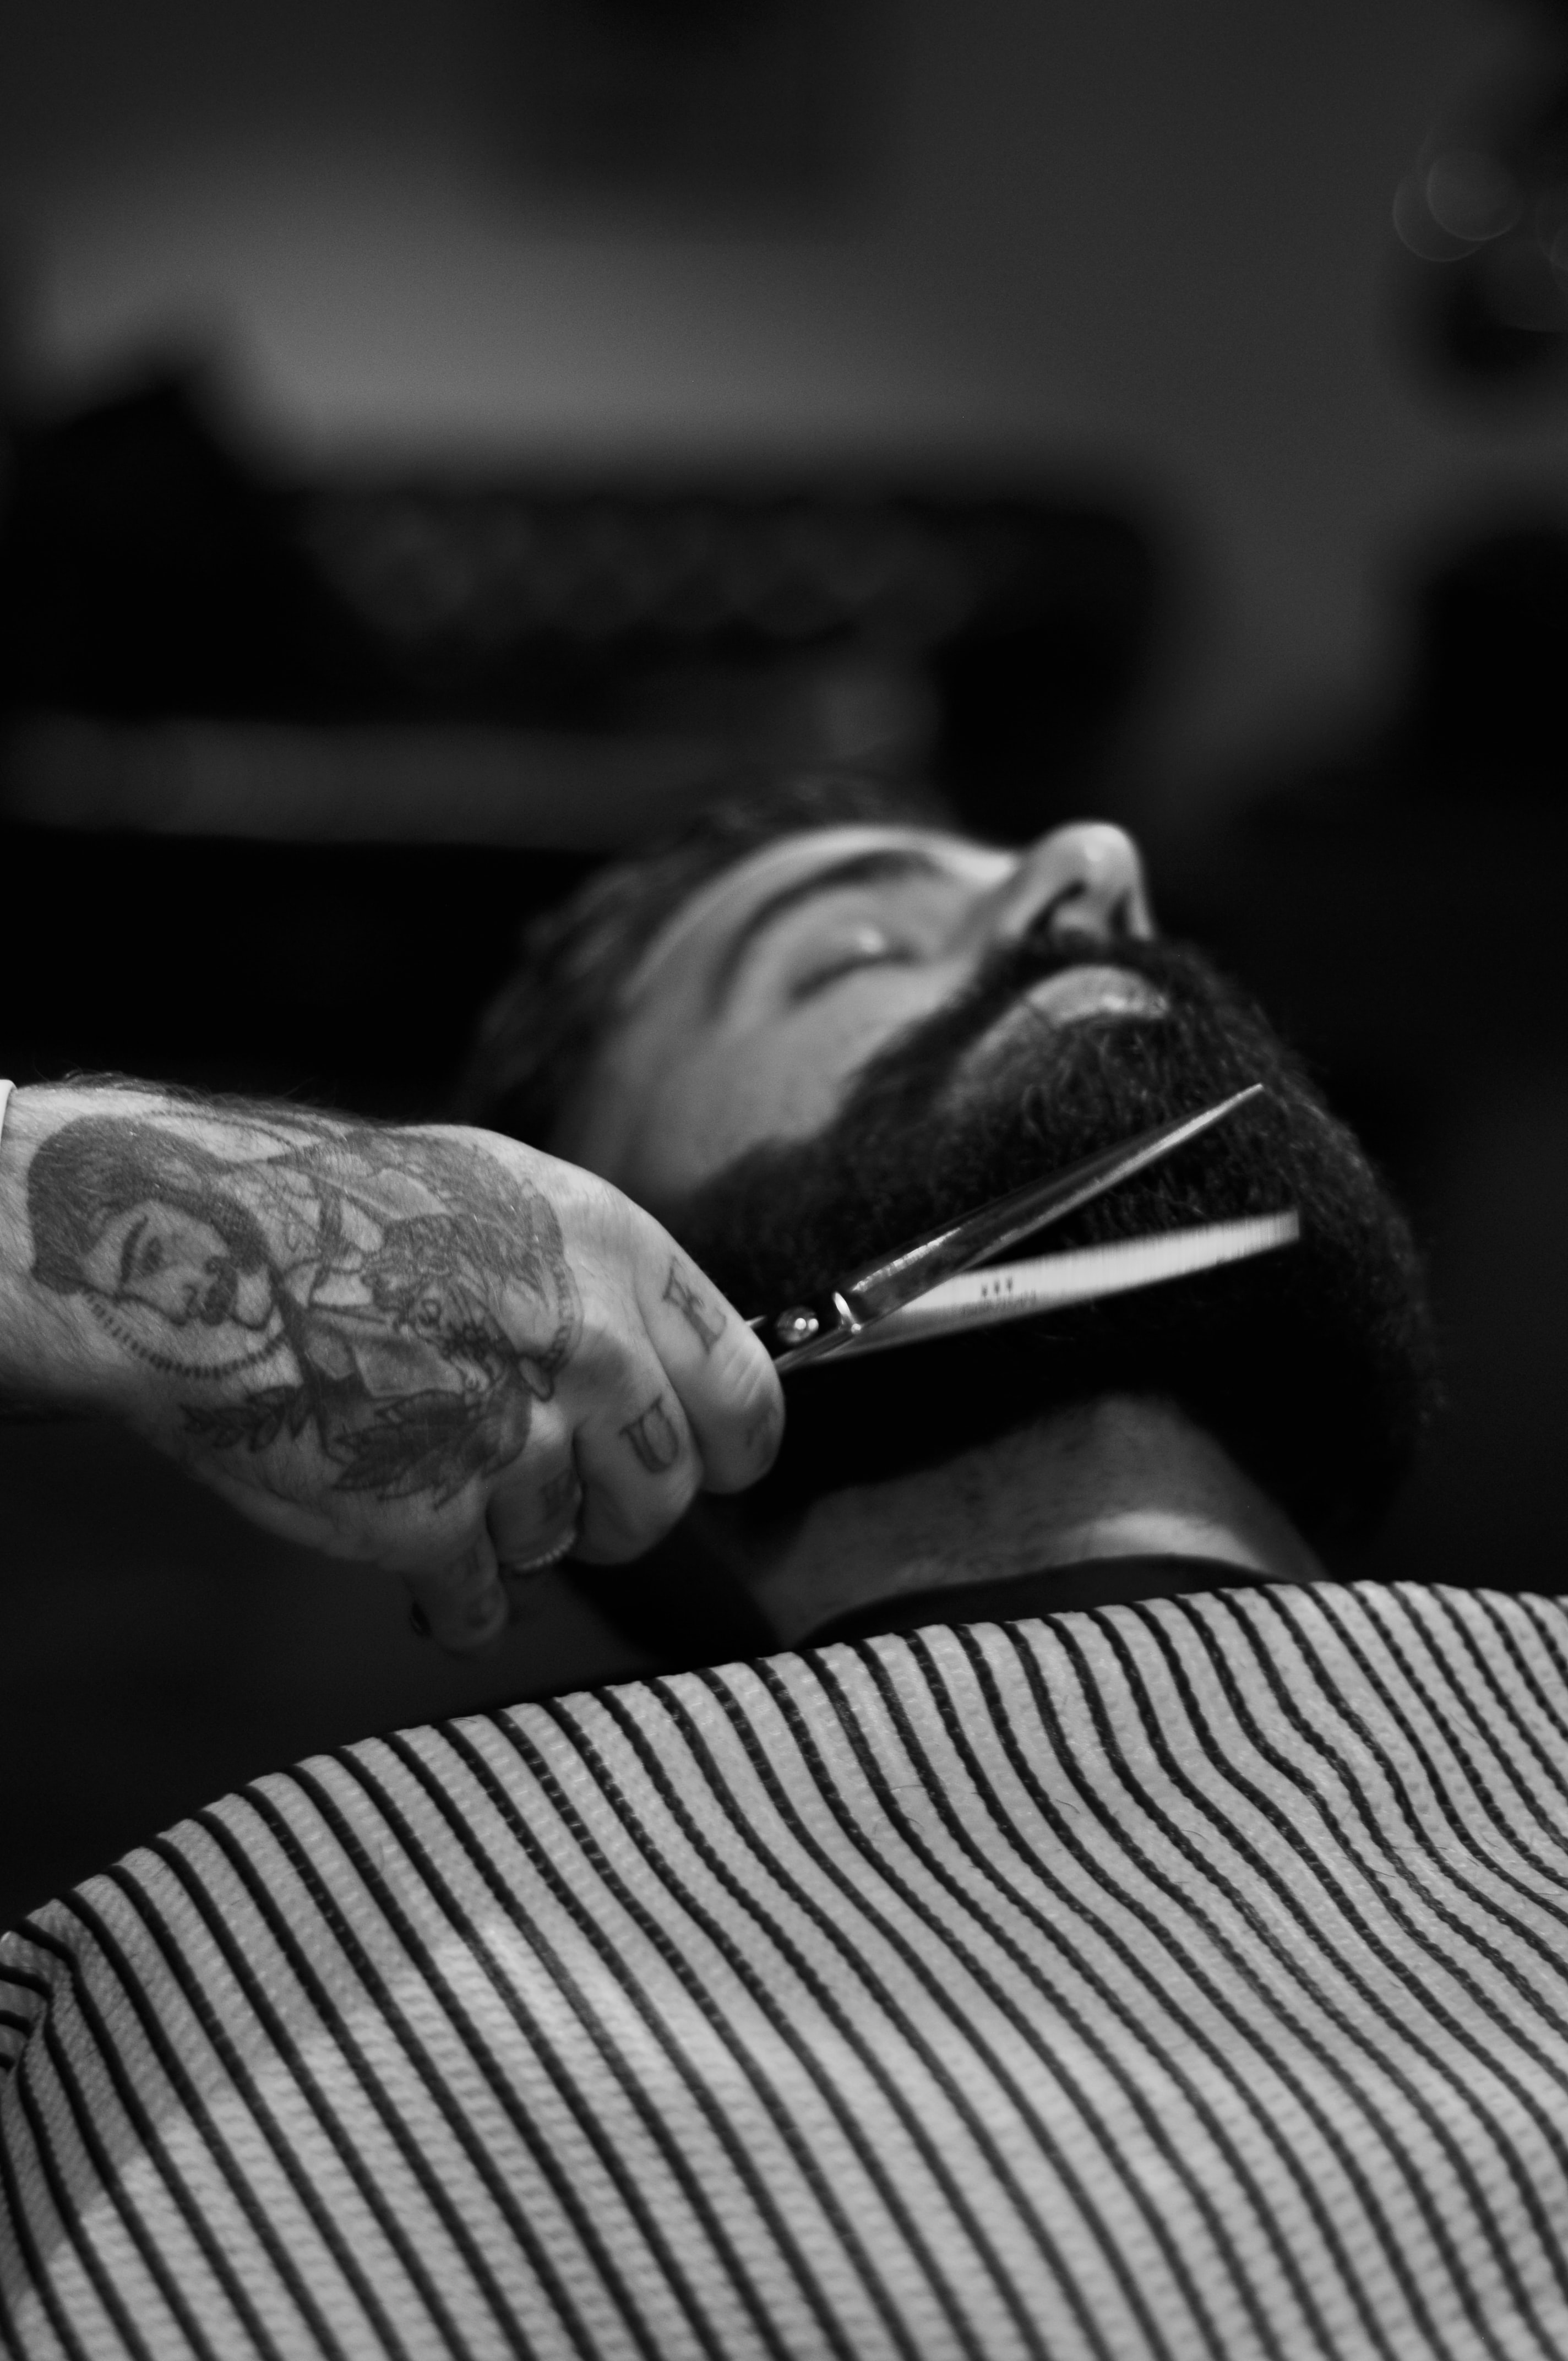 grayscale photography of person holding scissor clipping man's beard